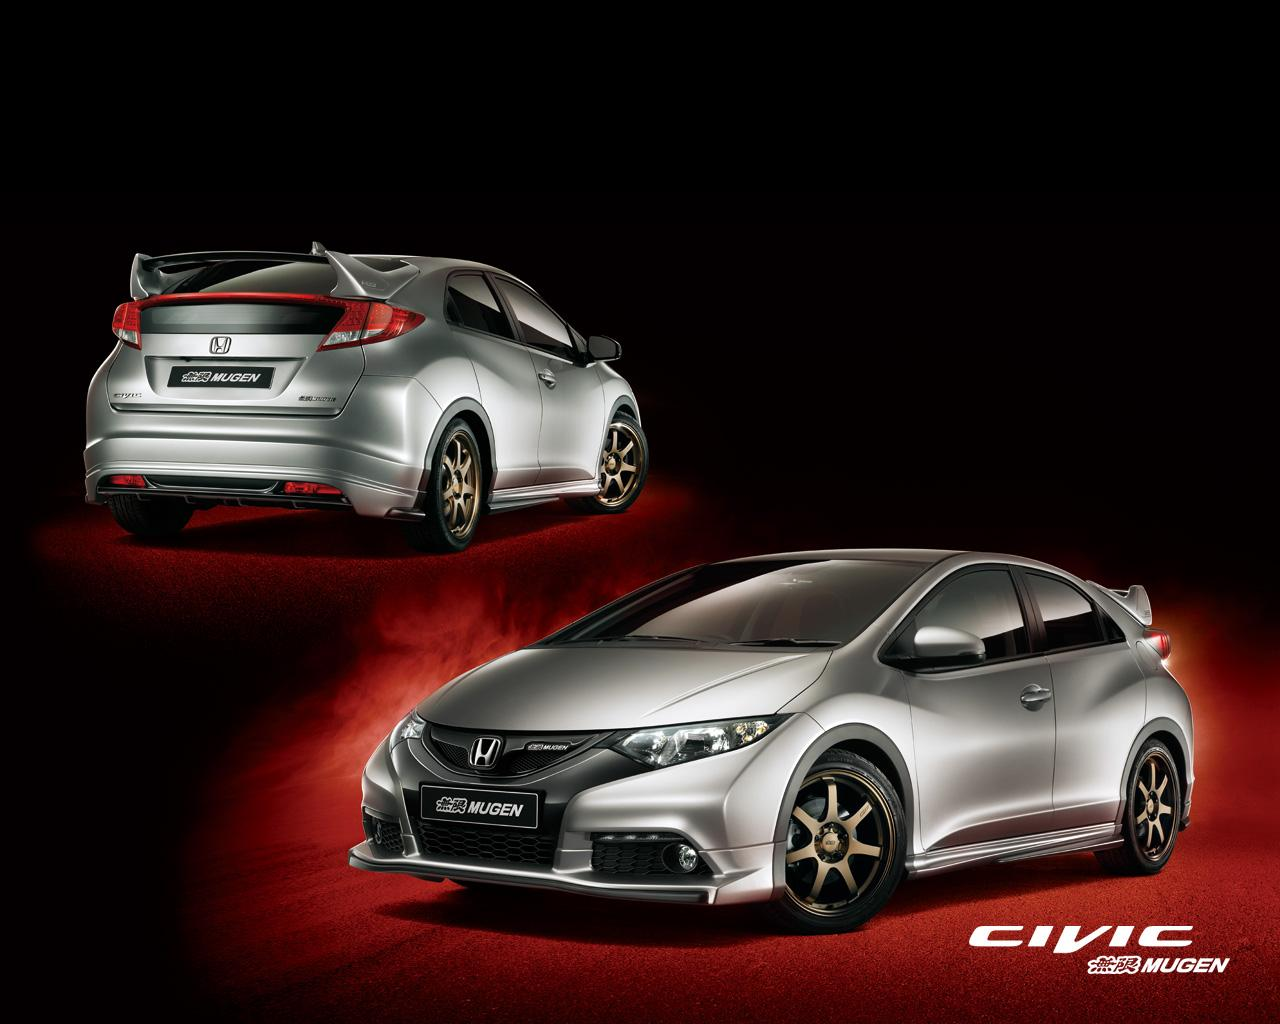 Honda civic hatchback gets mugen styling pack autoevolution for Honda civic hatchback 2013